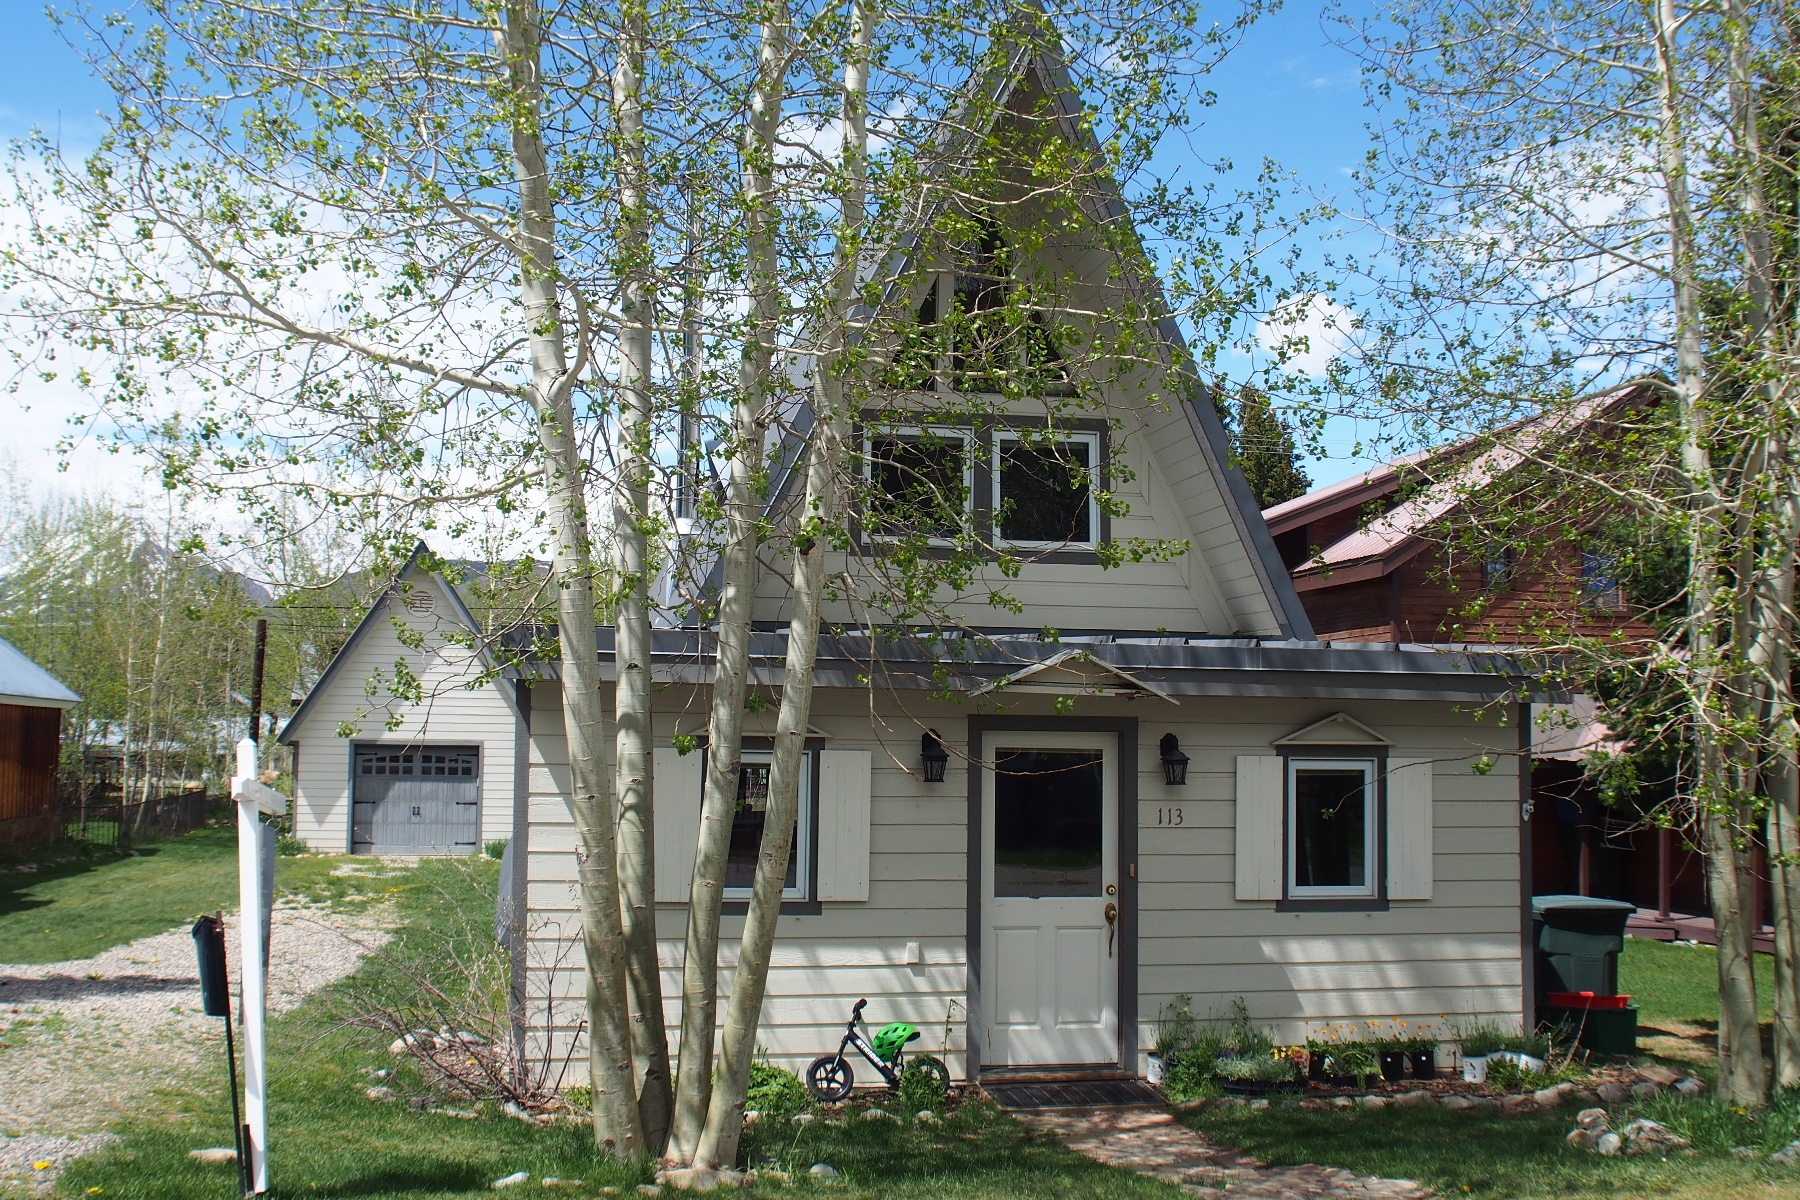 Single Family Home for Sale at Adorable Home in Town 113 Sopris Avenue Crested Butte, Colorado, 81224 United States